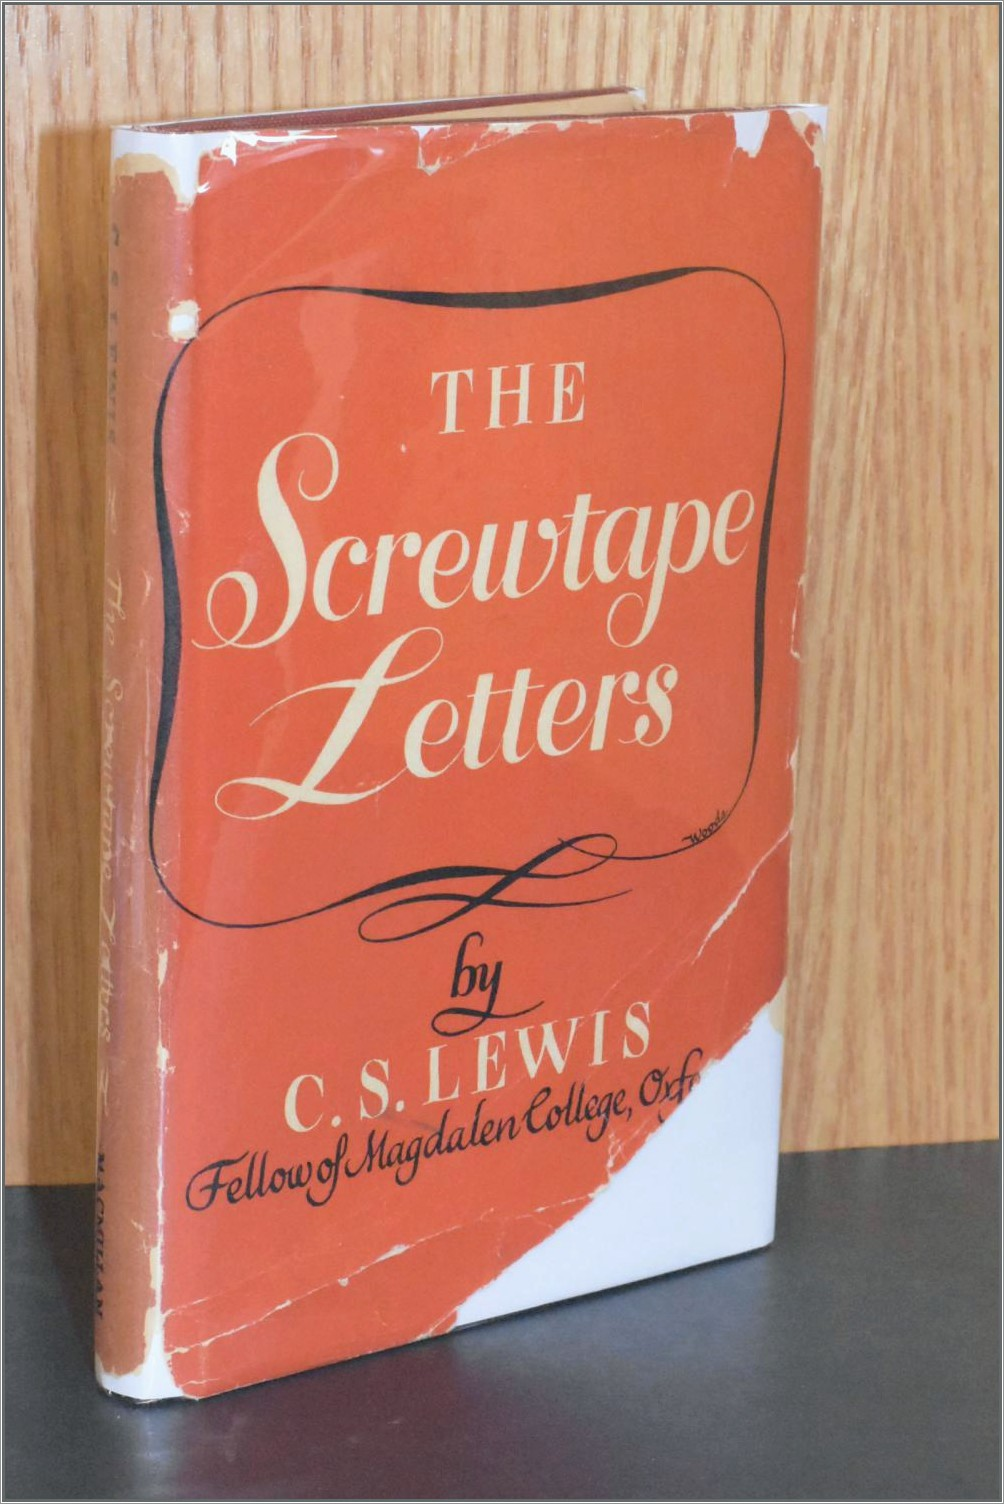 Screwtape Letters Book Club Questions